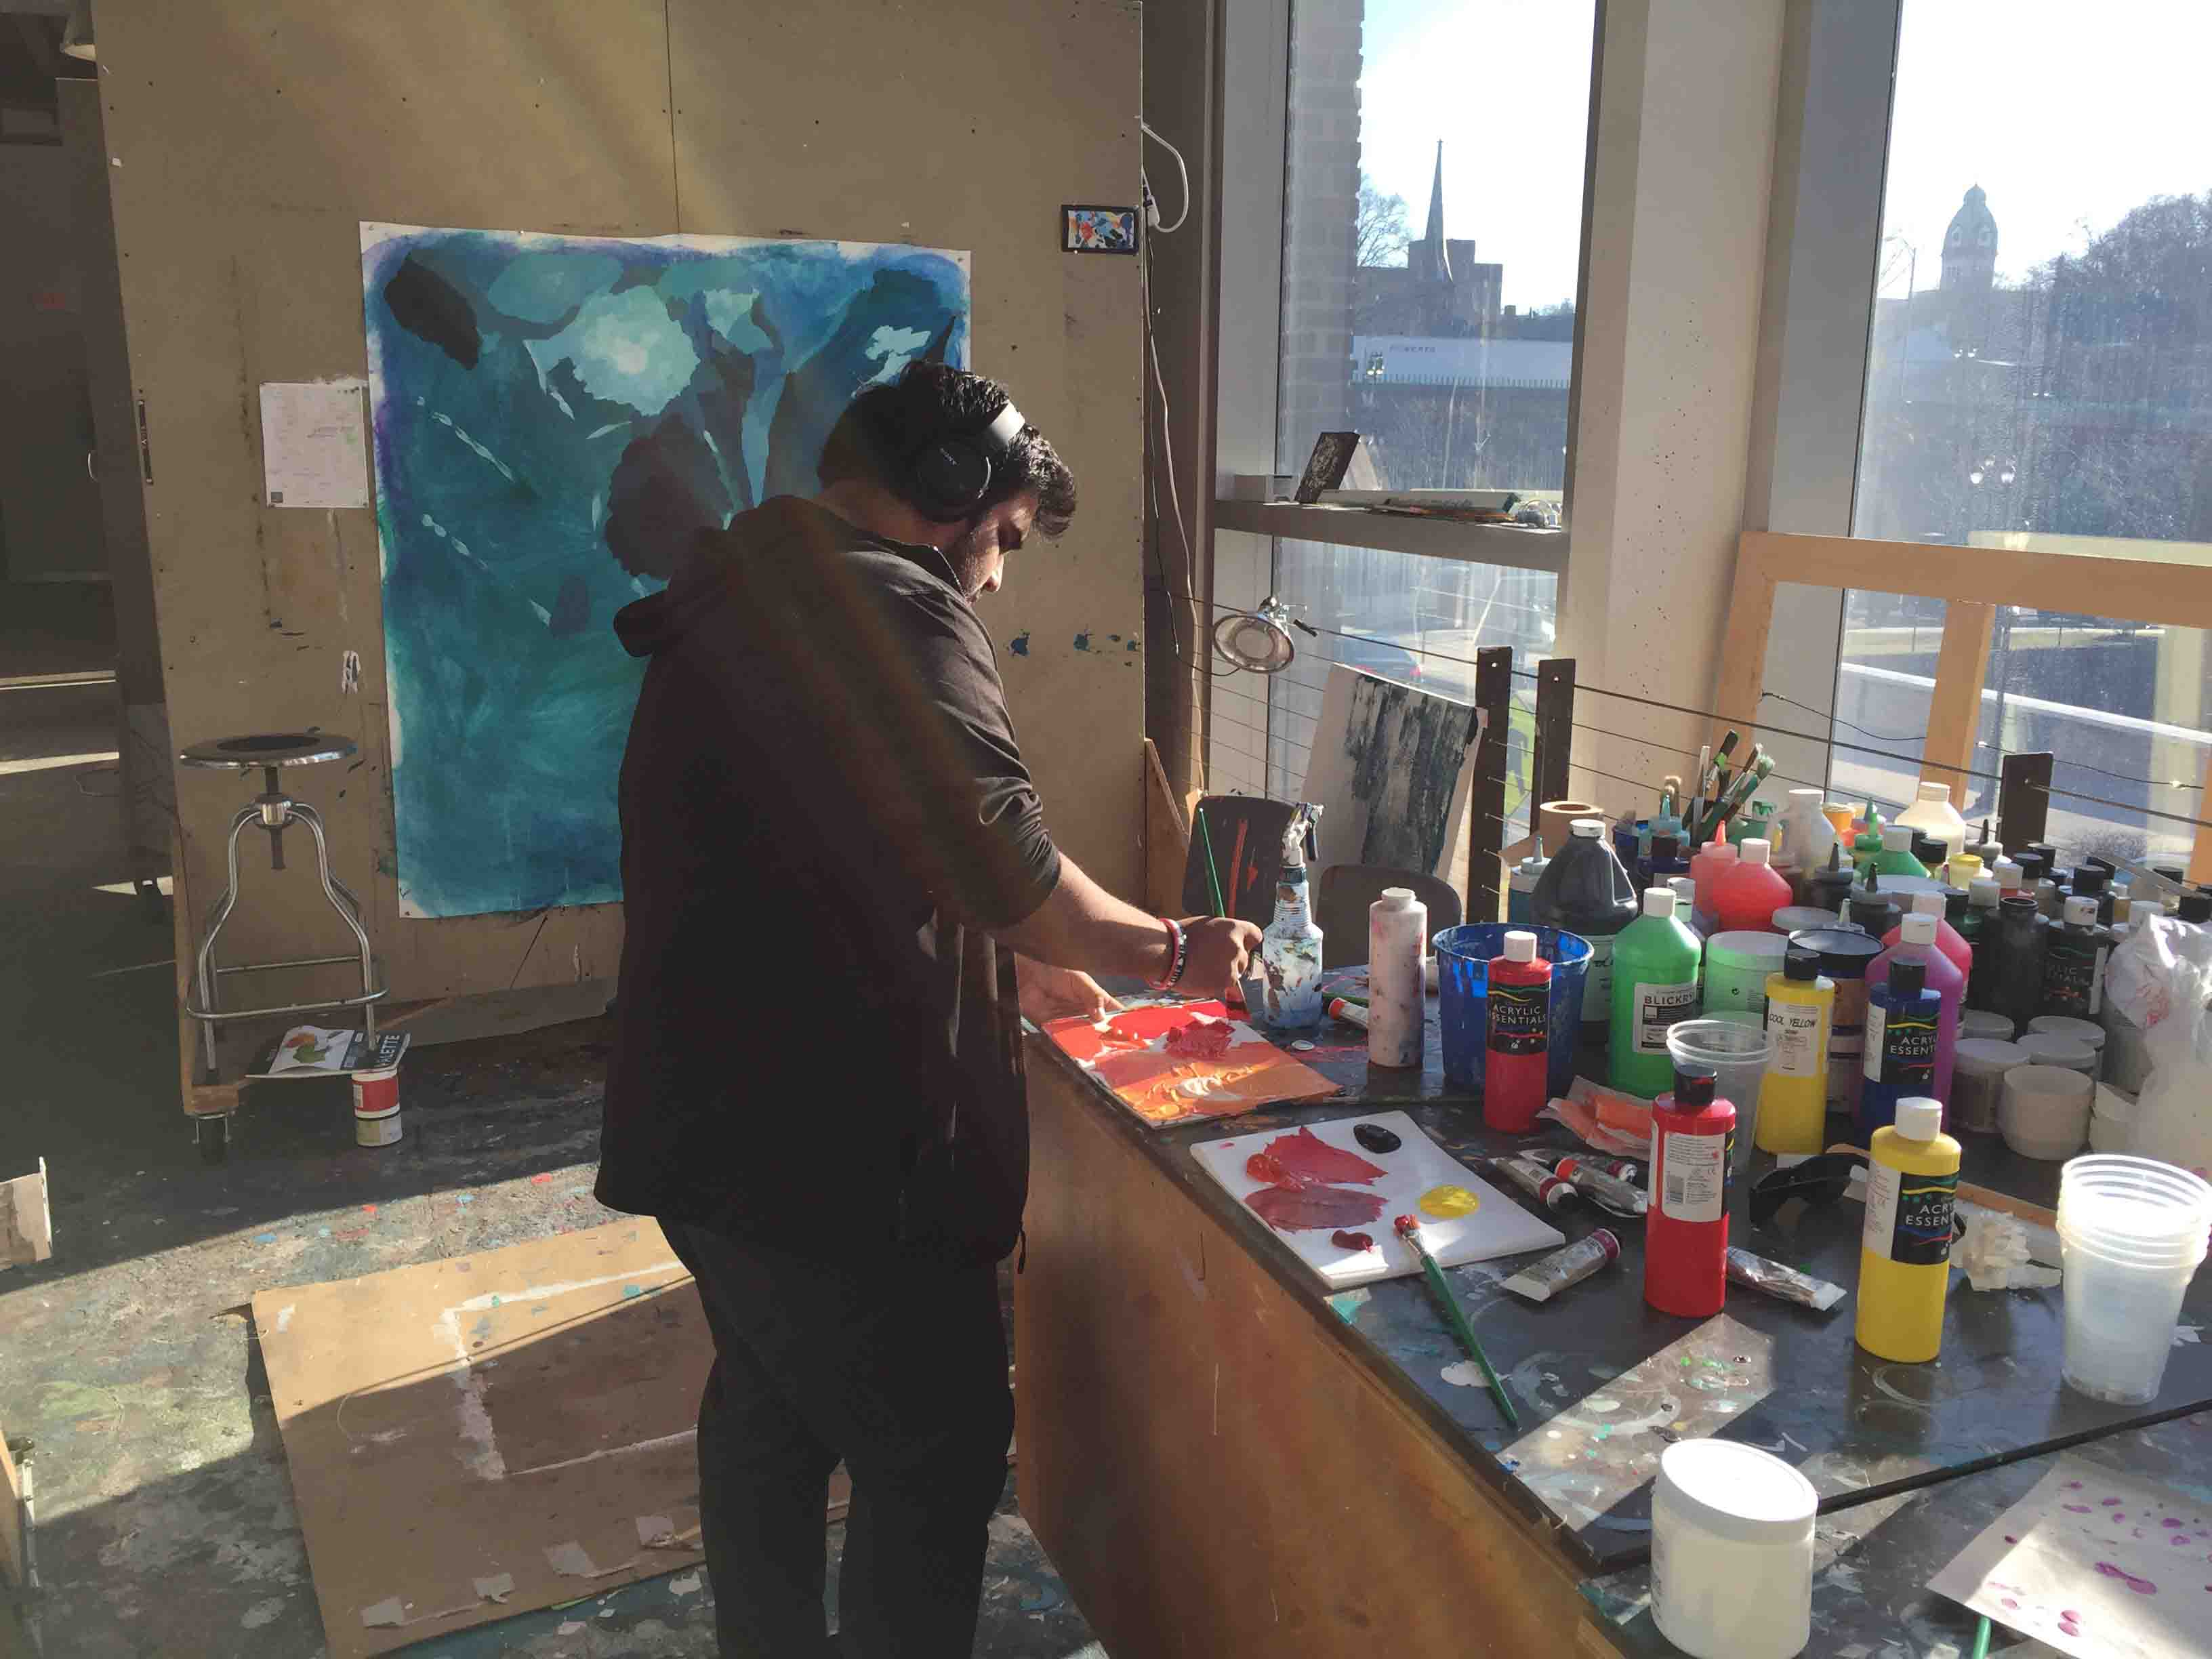 Pablo Pollish '18 paints on canvas in the Williams Visual Arts Building.